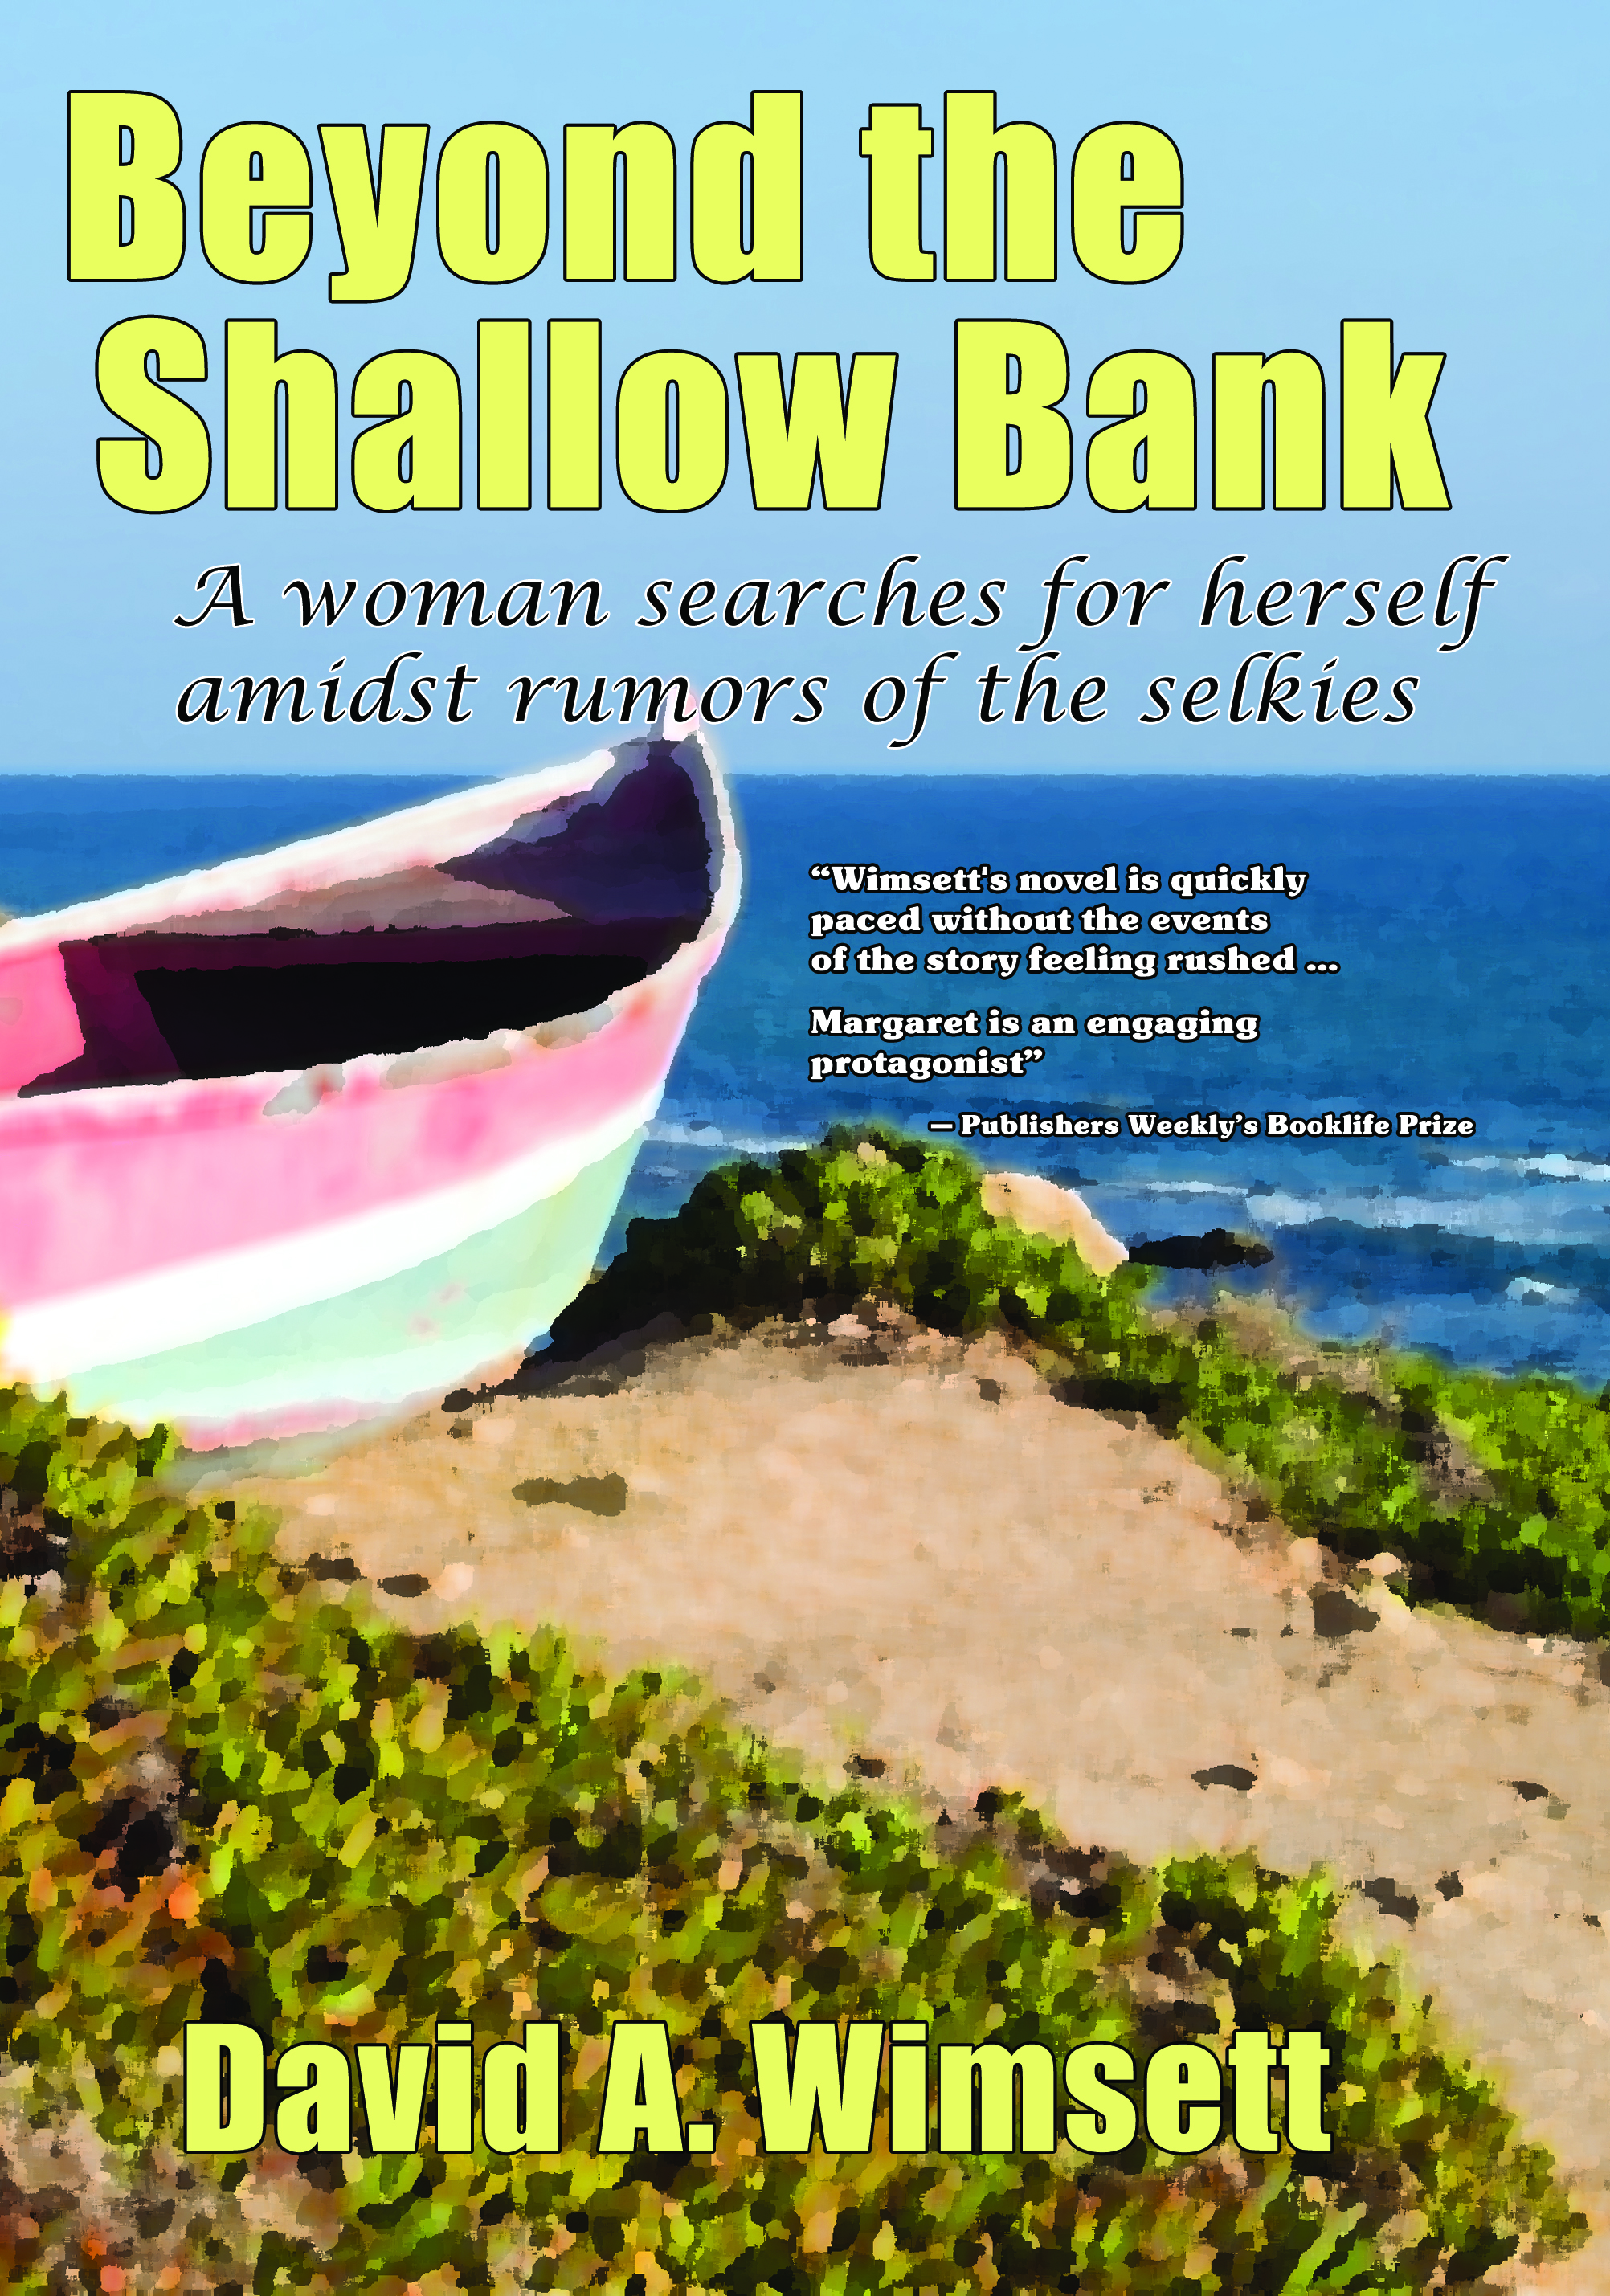 Beyond the Shallow Bank